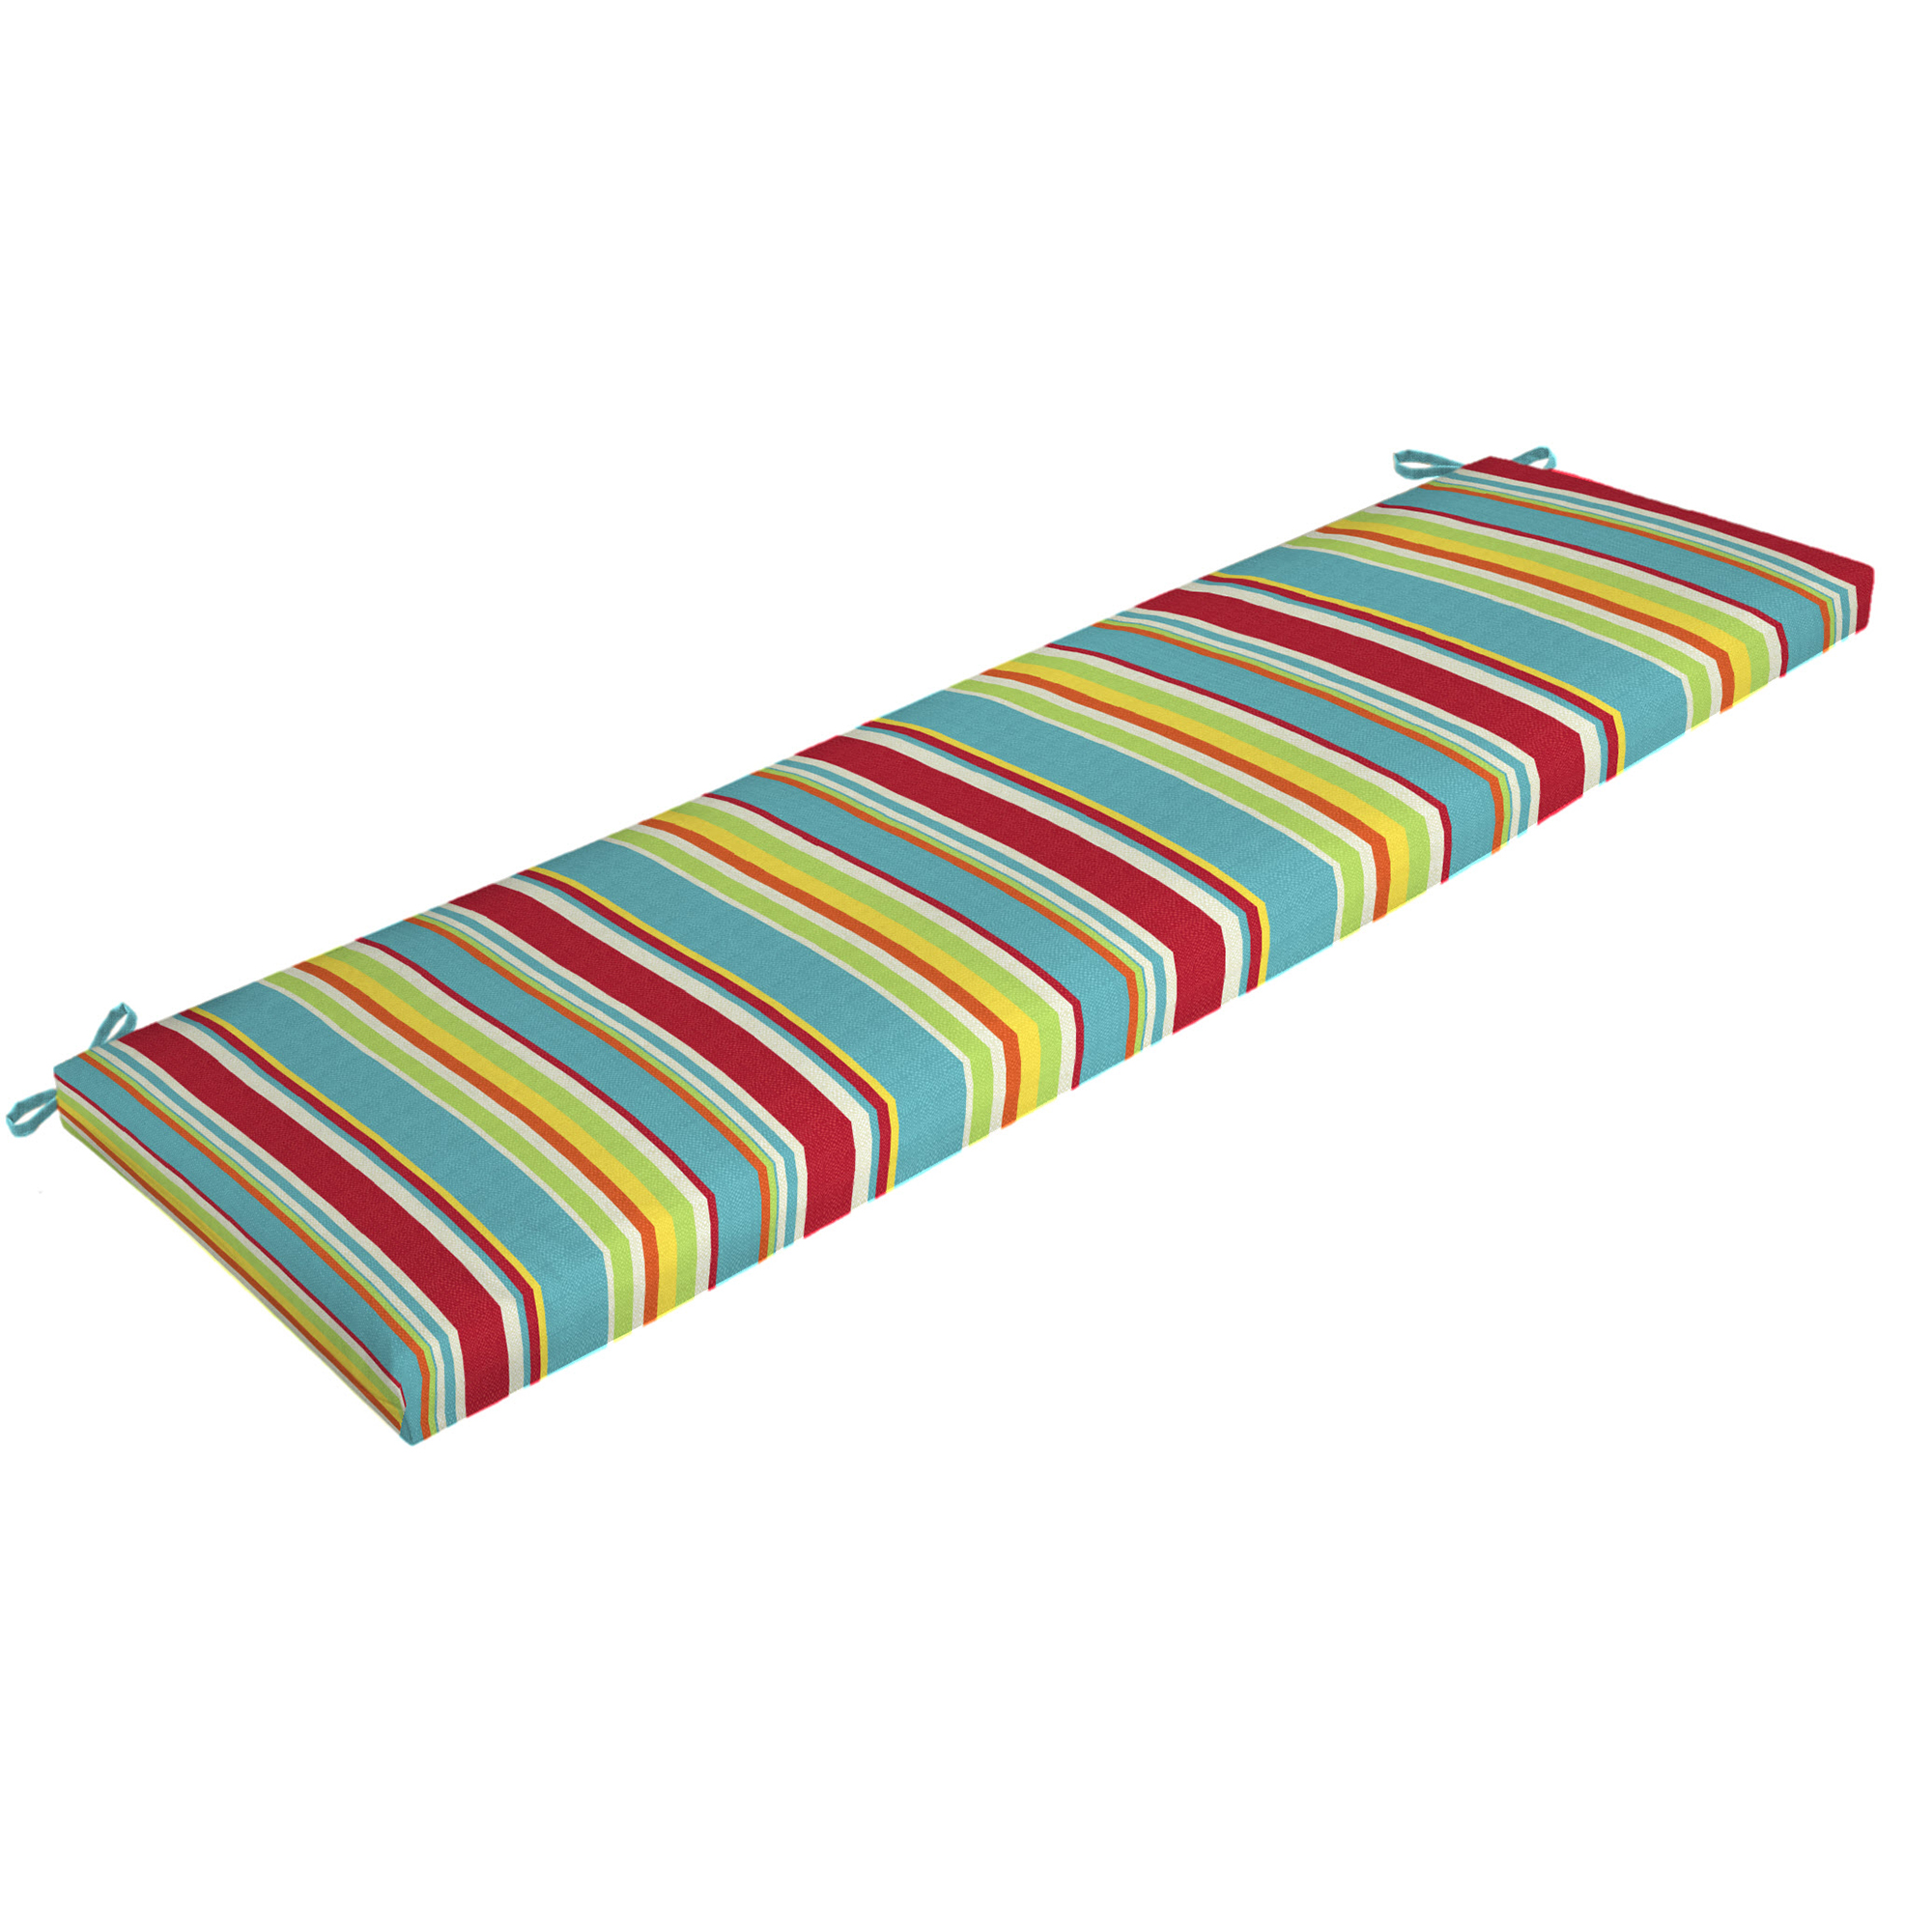 Mainstays Multi Stripe Outdoor Patio Bench Cushion